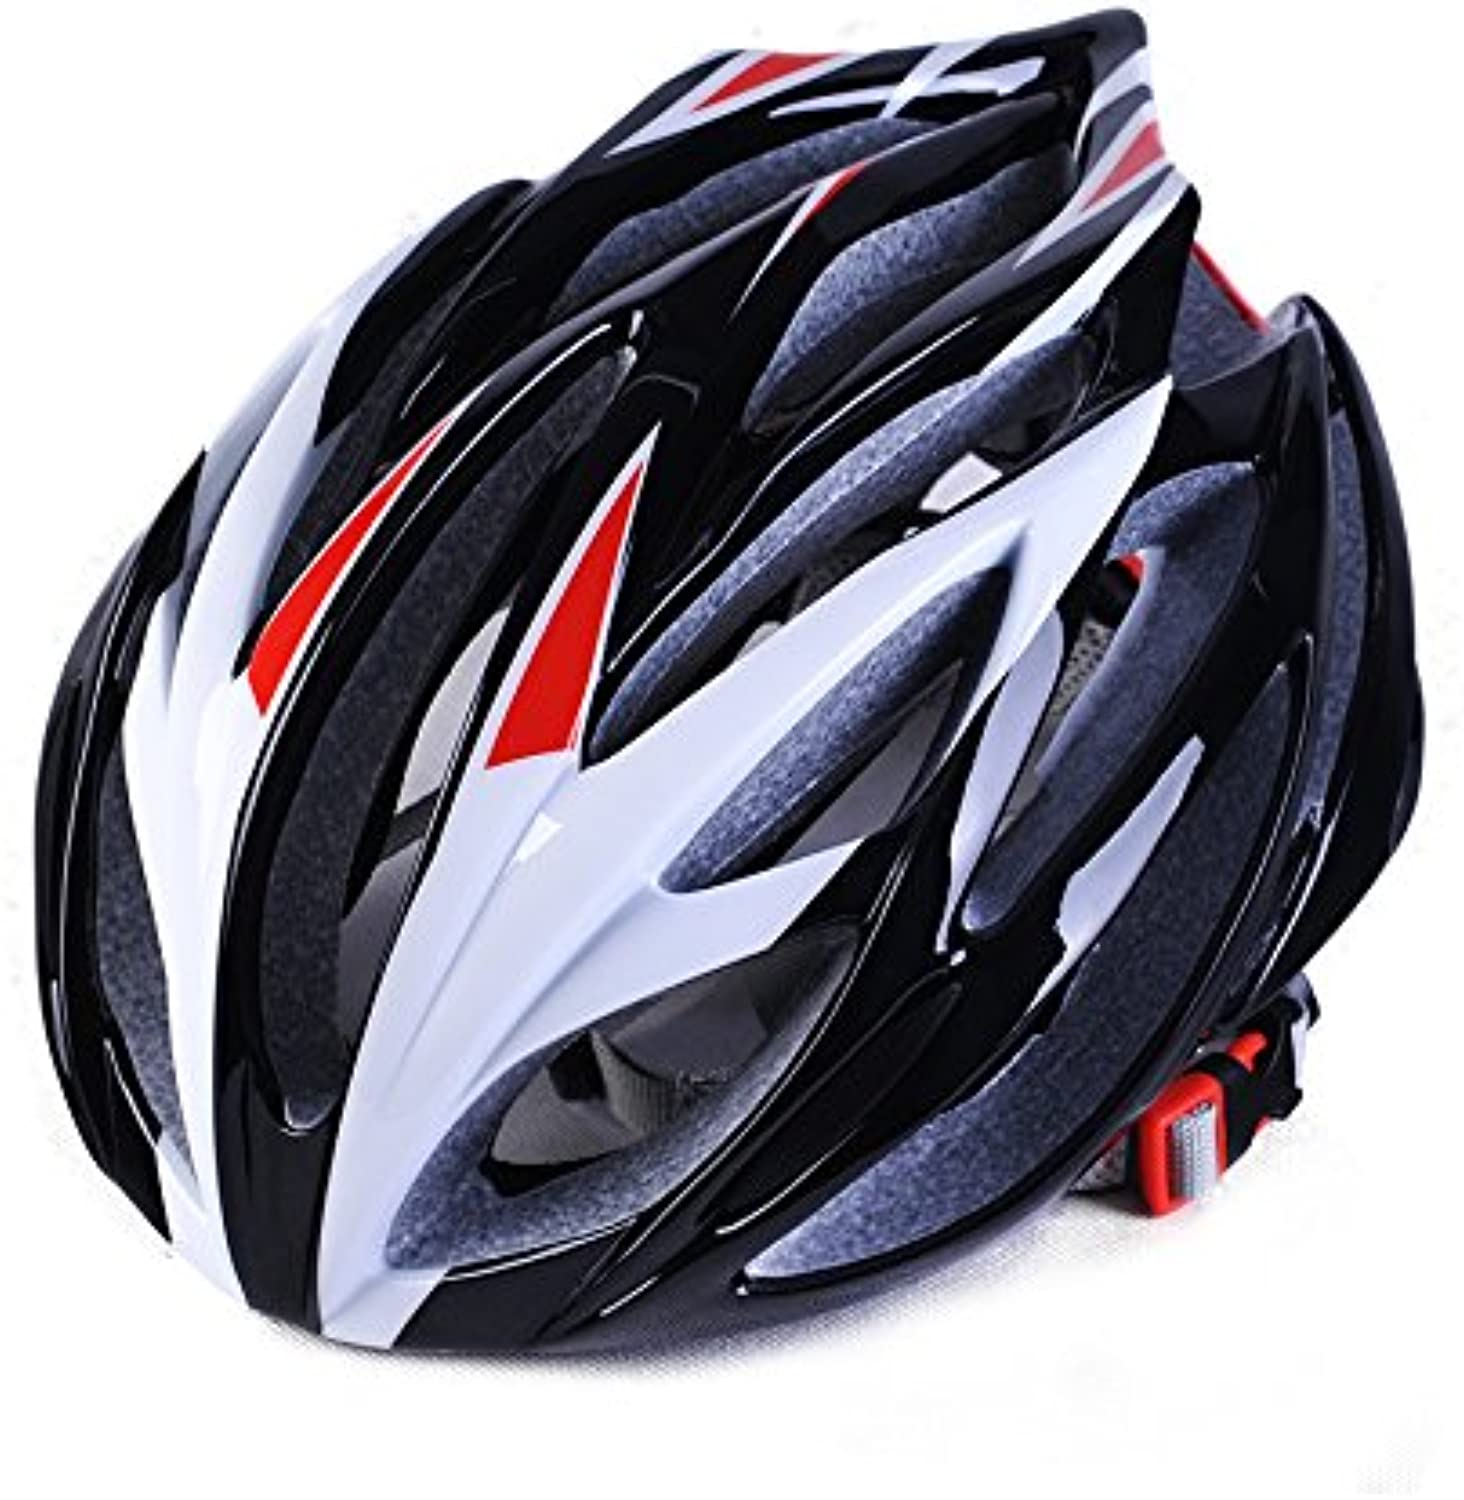 One Piece Cycling Helmets, Road Bike Helmet,1